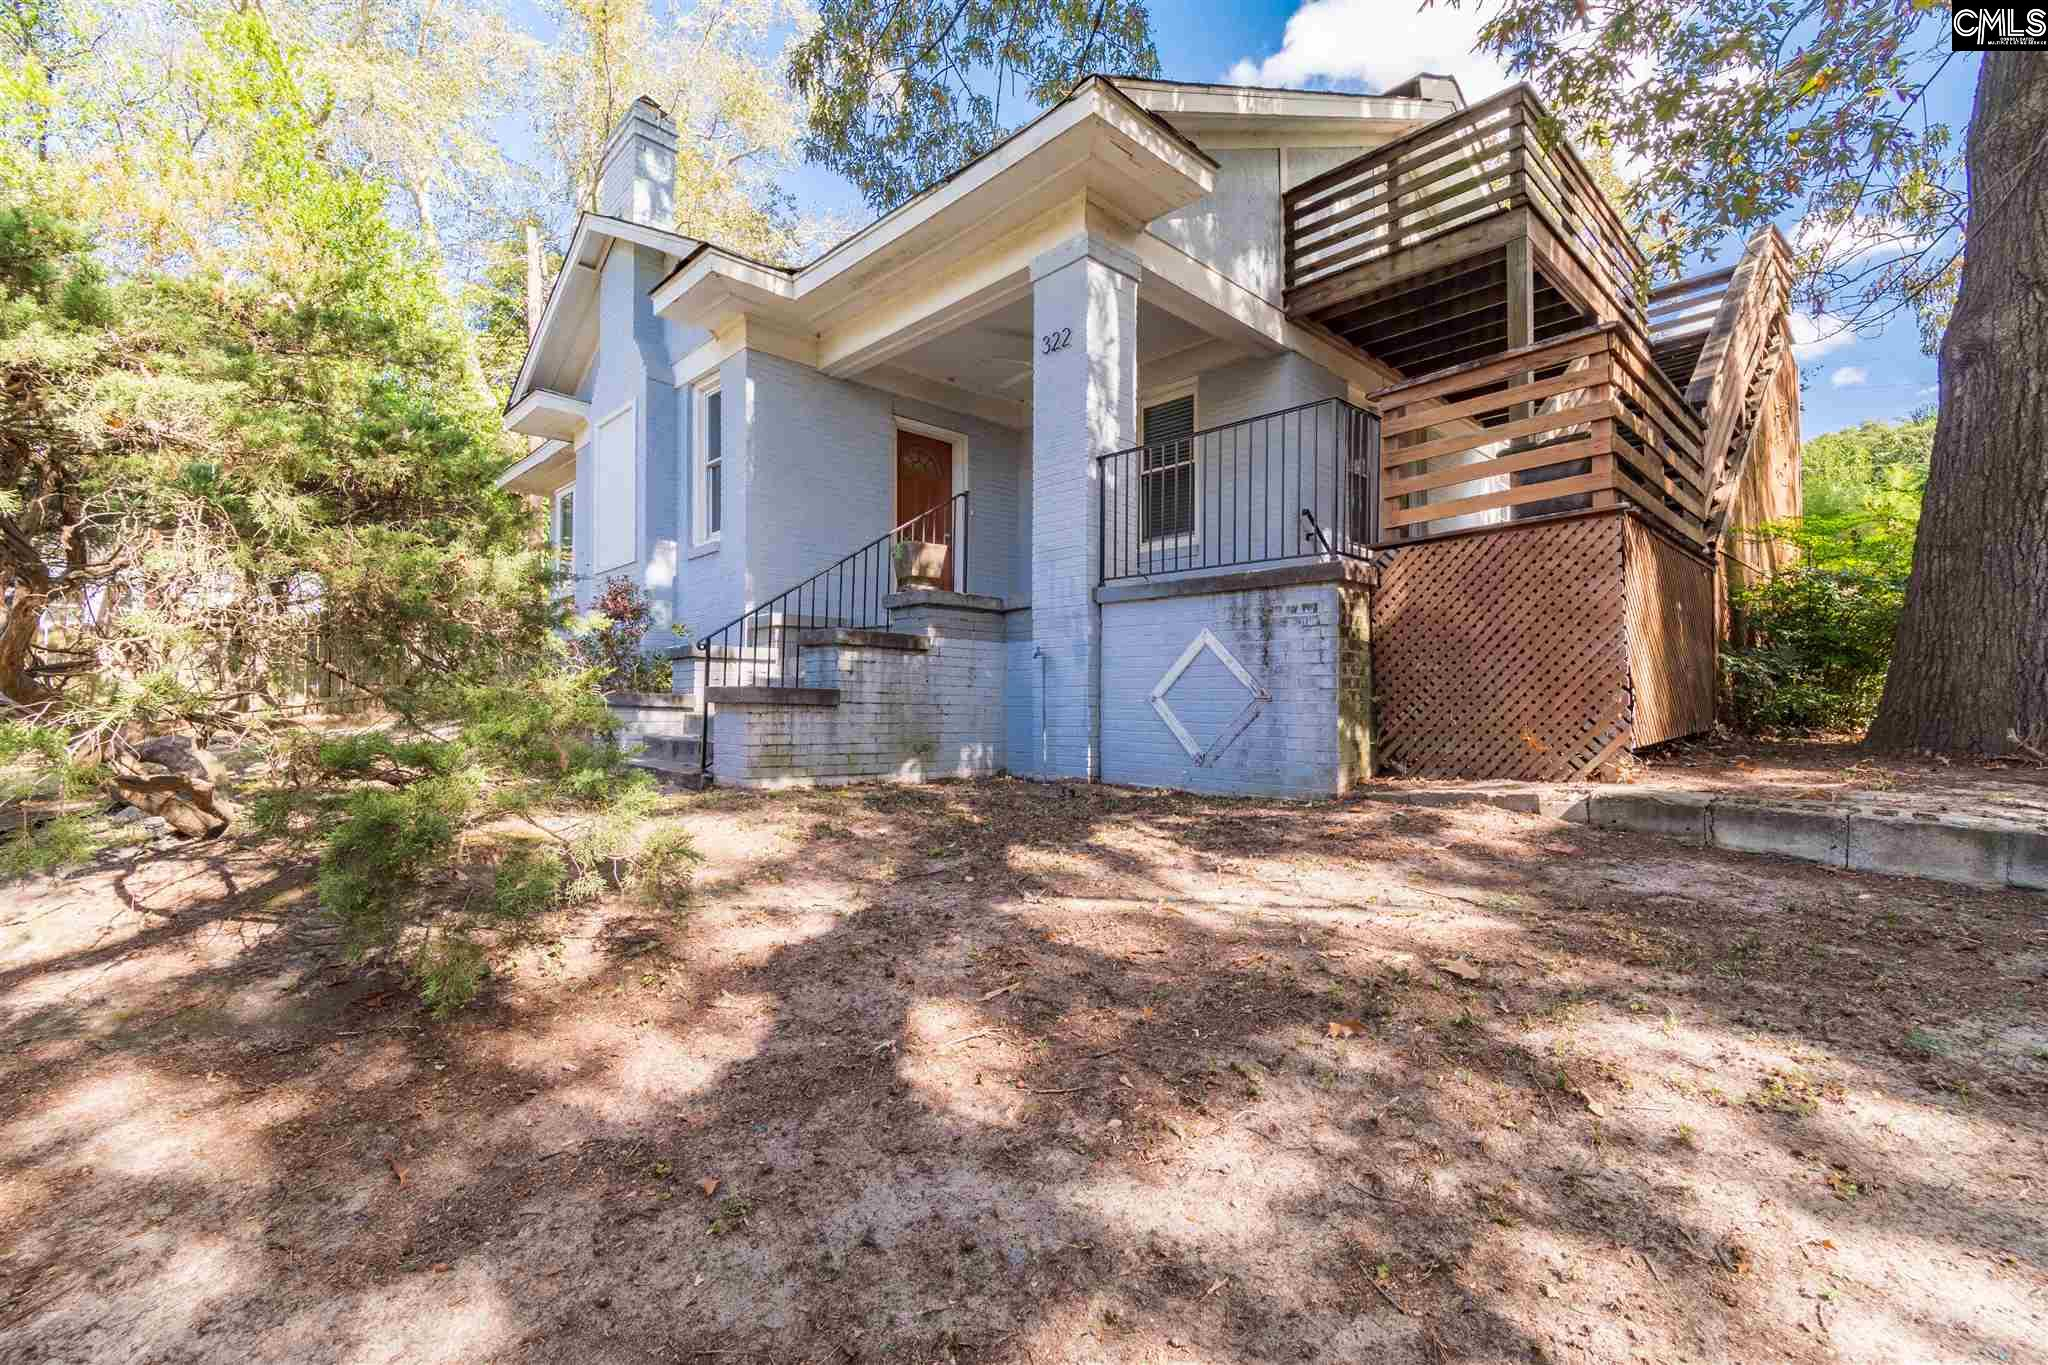 322 S Pickens Columbia, SC 29205